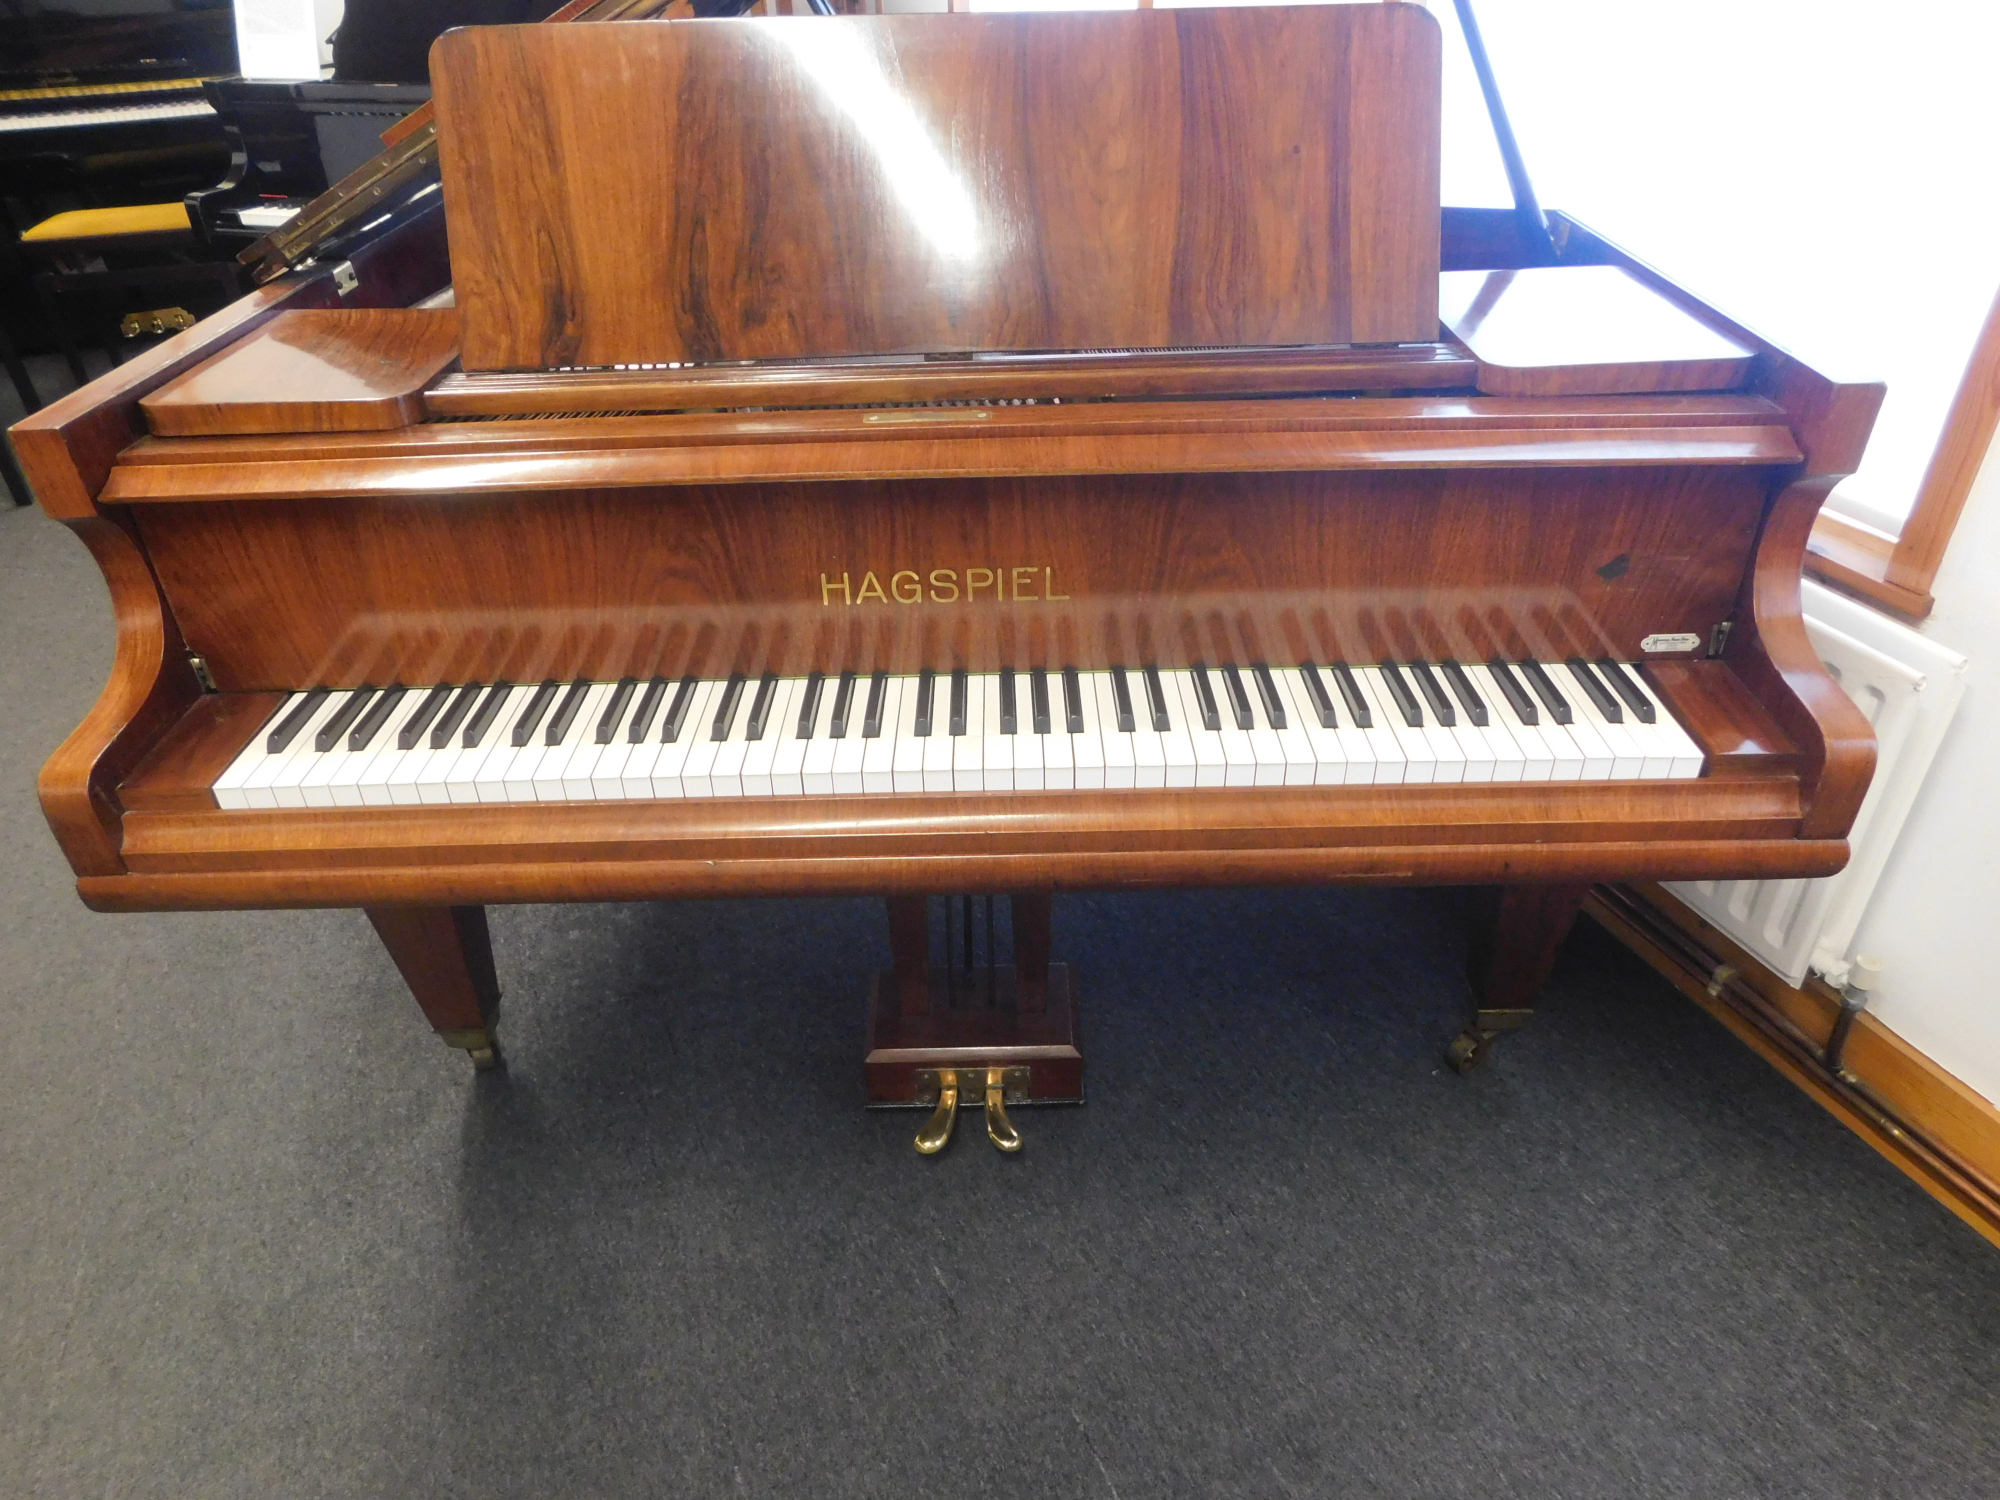 Hagspiel Baby Grand Piano Hanna Pianos South West London Yamaha